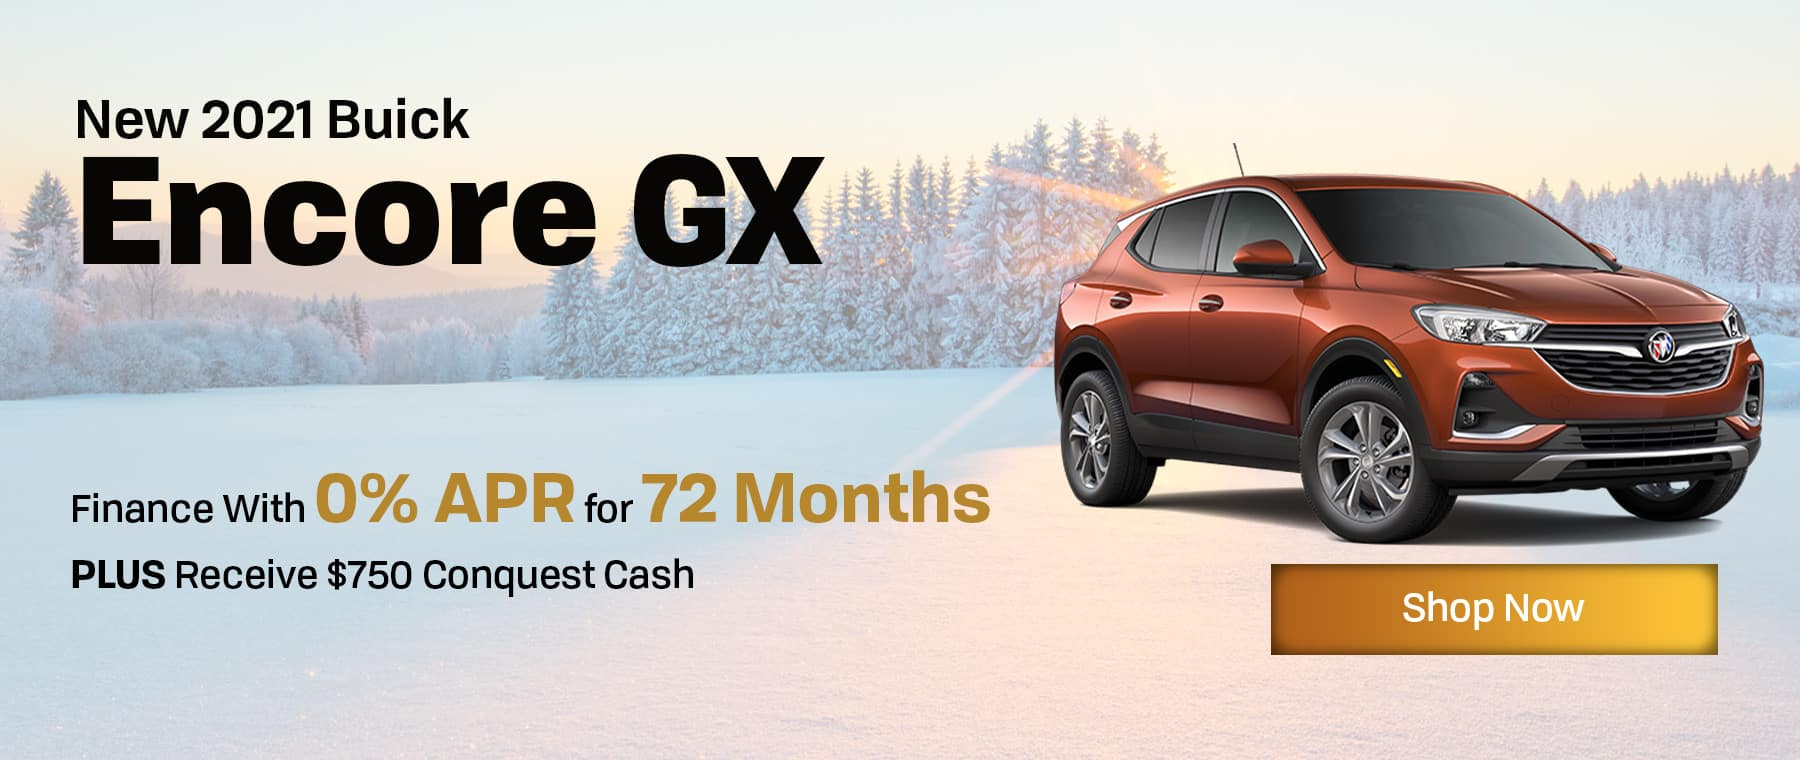 New 2021 Buick Encore GX_jan-2021